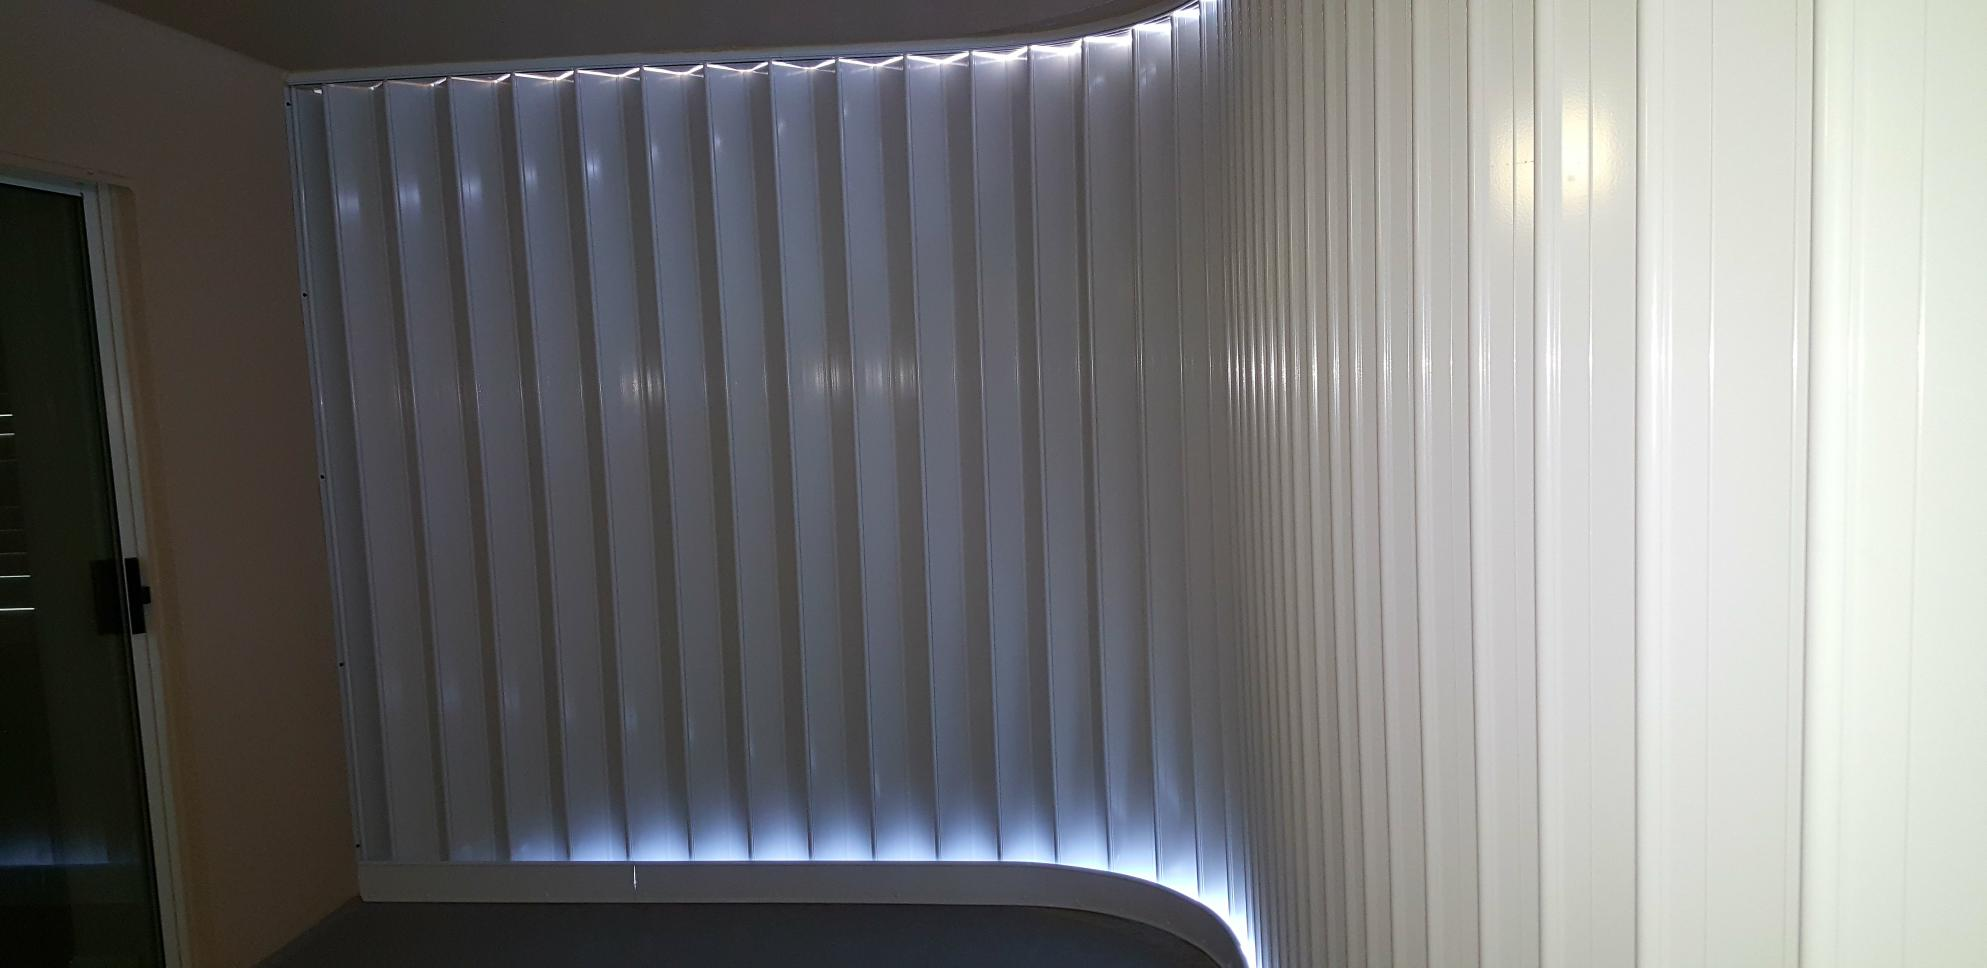 Accordion Shutters Enclose A Large Balcony Or Opening